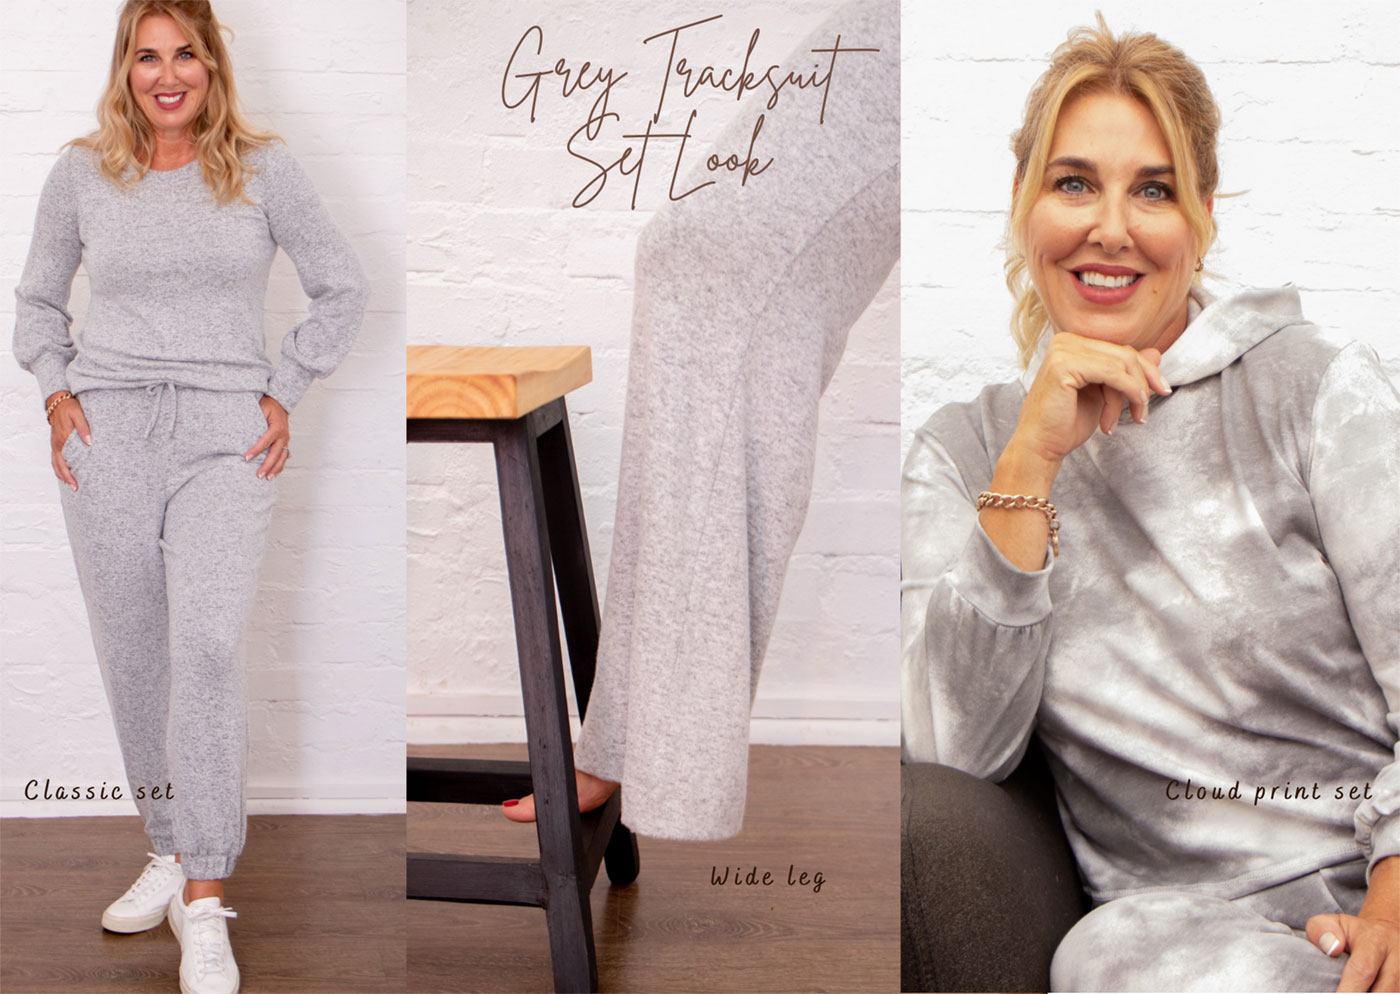 Limited Comfy Wear from Off The Rails Fashionista